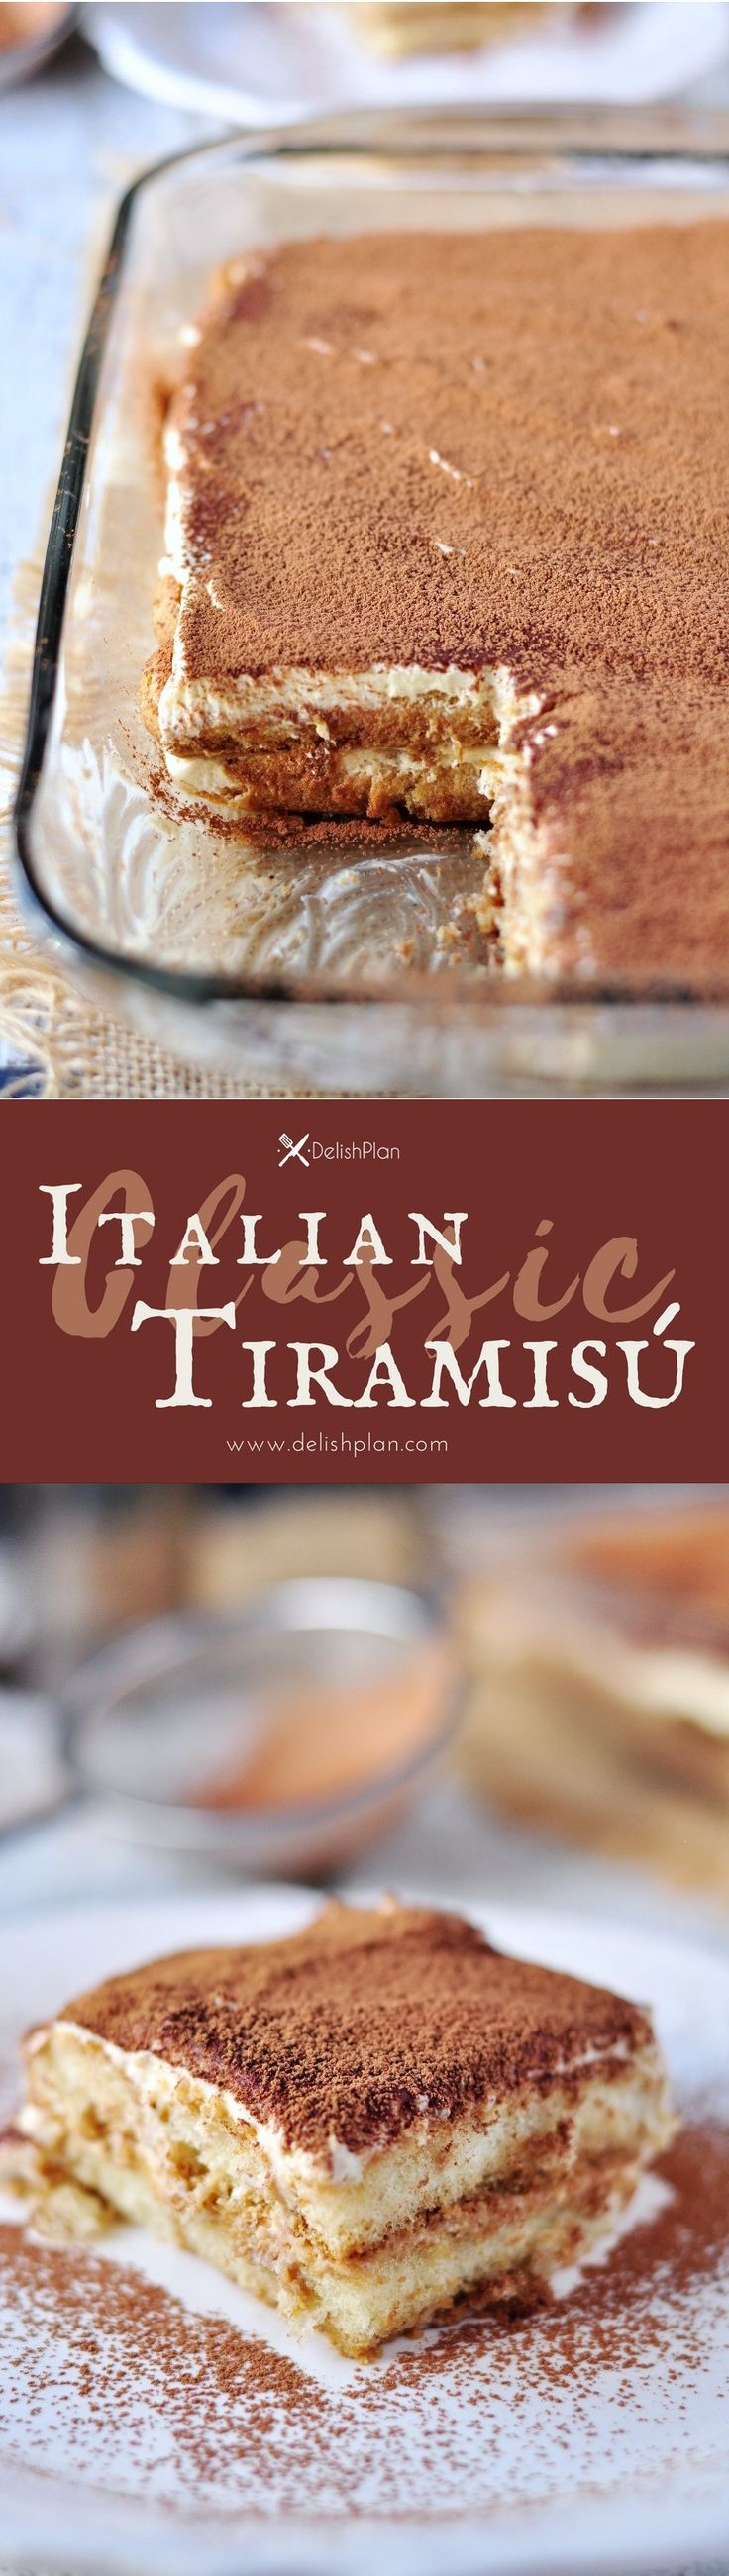 When the original can't really be improved, it's a classic. This Classic Italian Tiramisu is one of these classics. Watch our video to learn how to make it. Read more at http://www.delishplan.com/classic-italian-tiramisu/